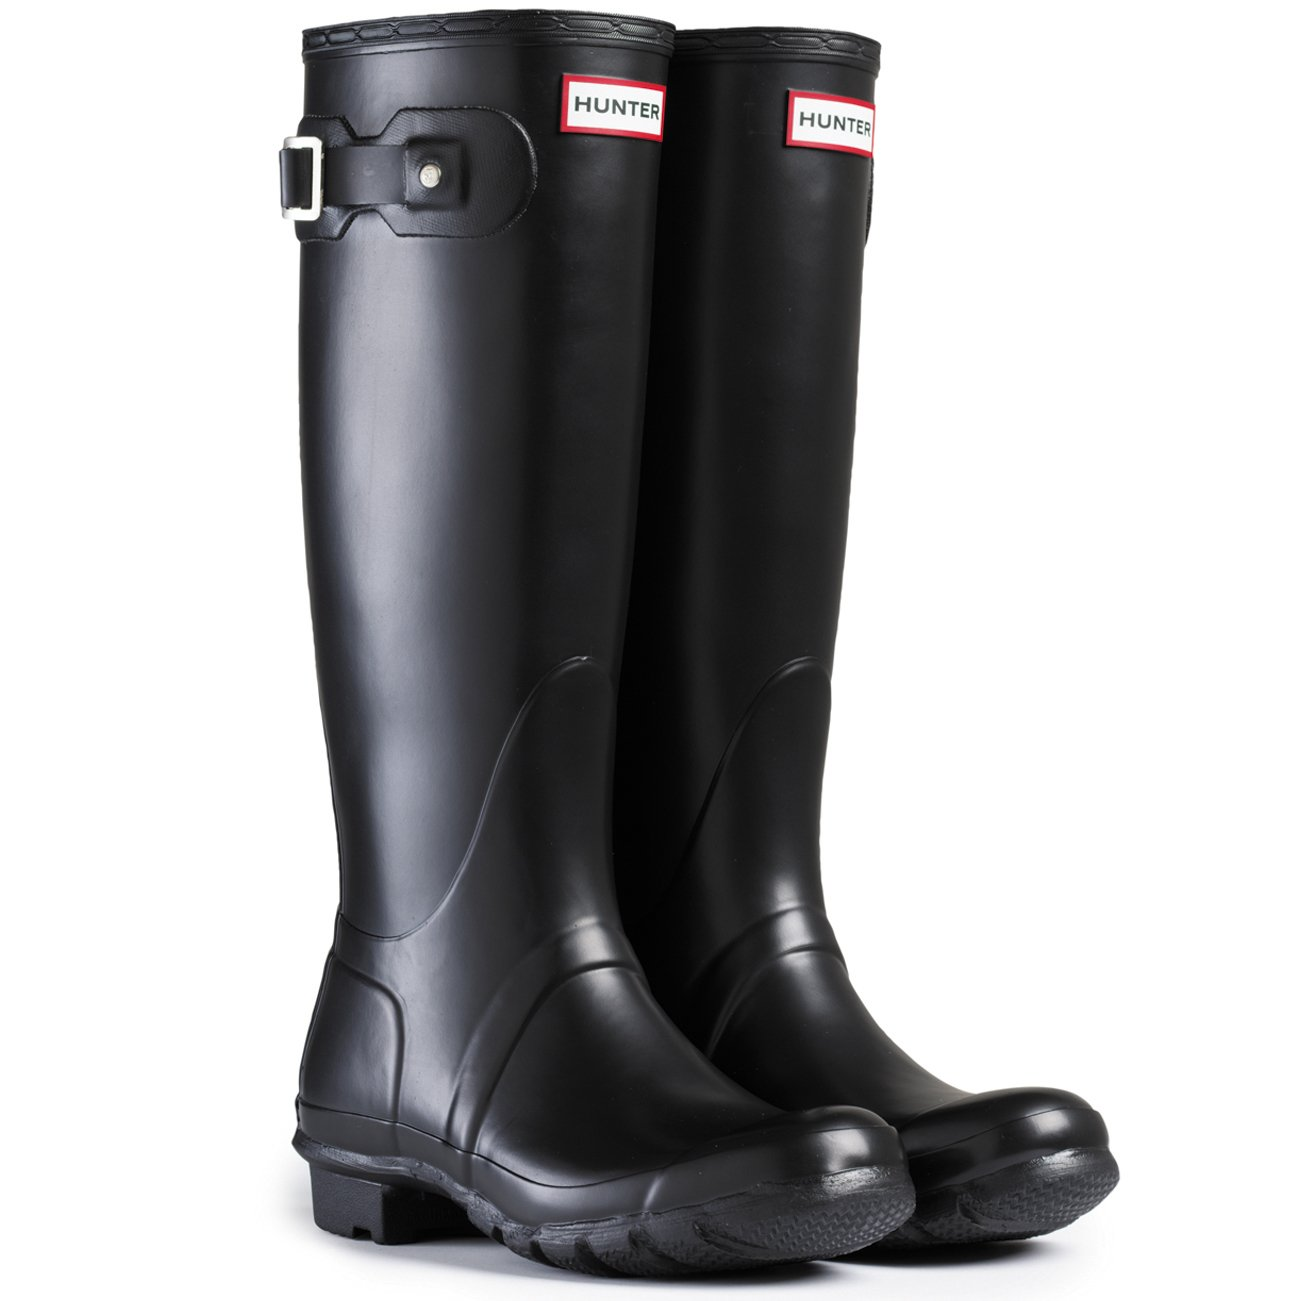 Womens Hunter Original Neoprene Winter Snow Festival Rain Wellington Boot - Black - 8